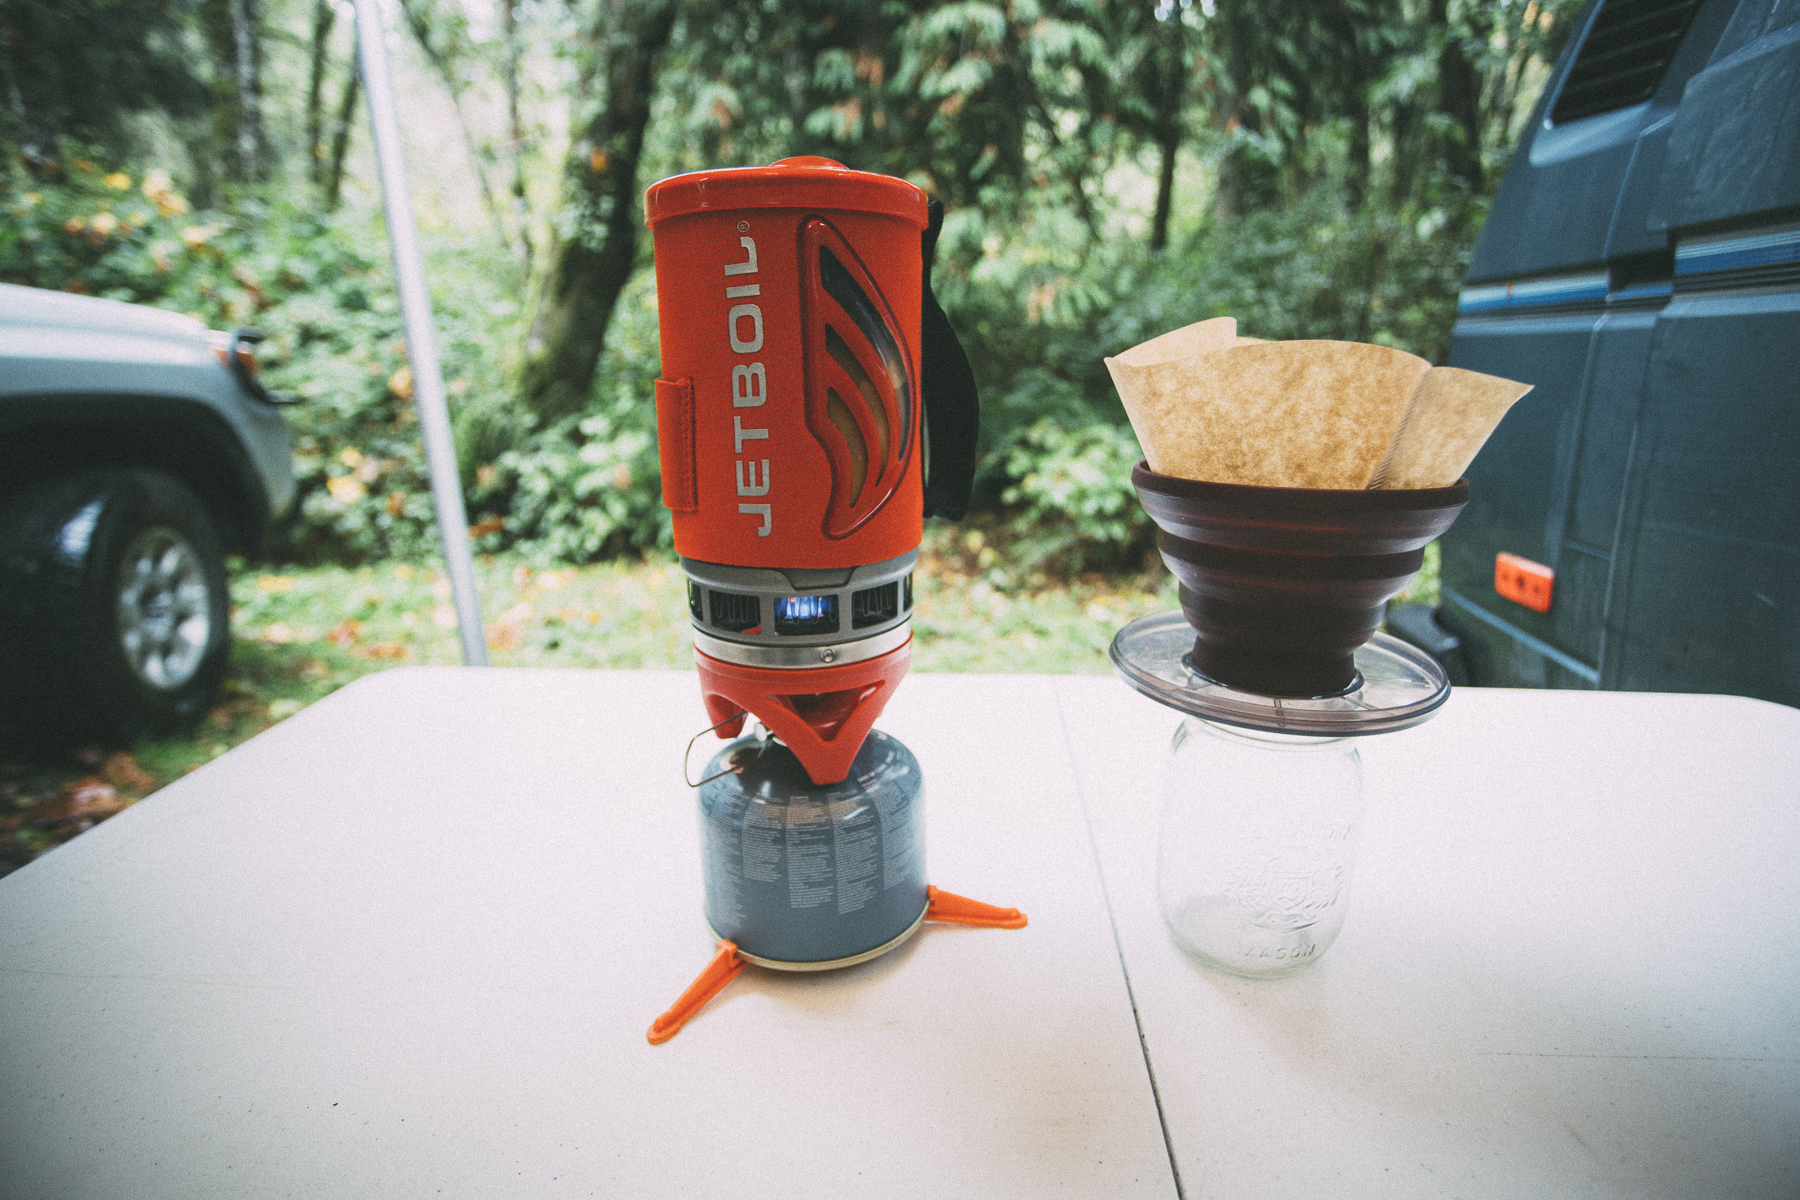 jetboil flash cooking system sitting on table beside pour-over GSI coffee south america gearlist